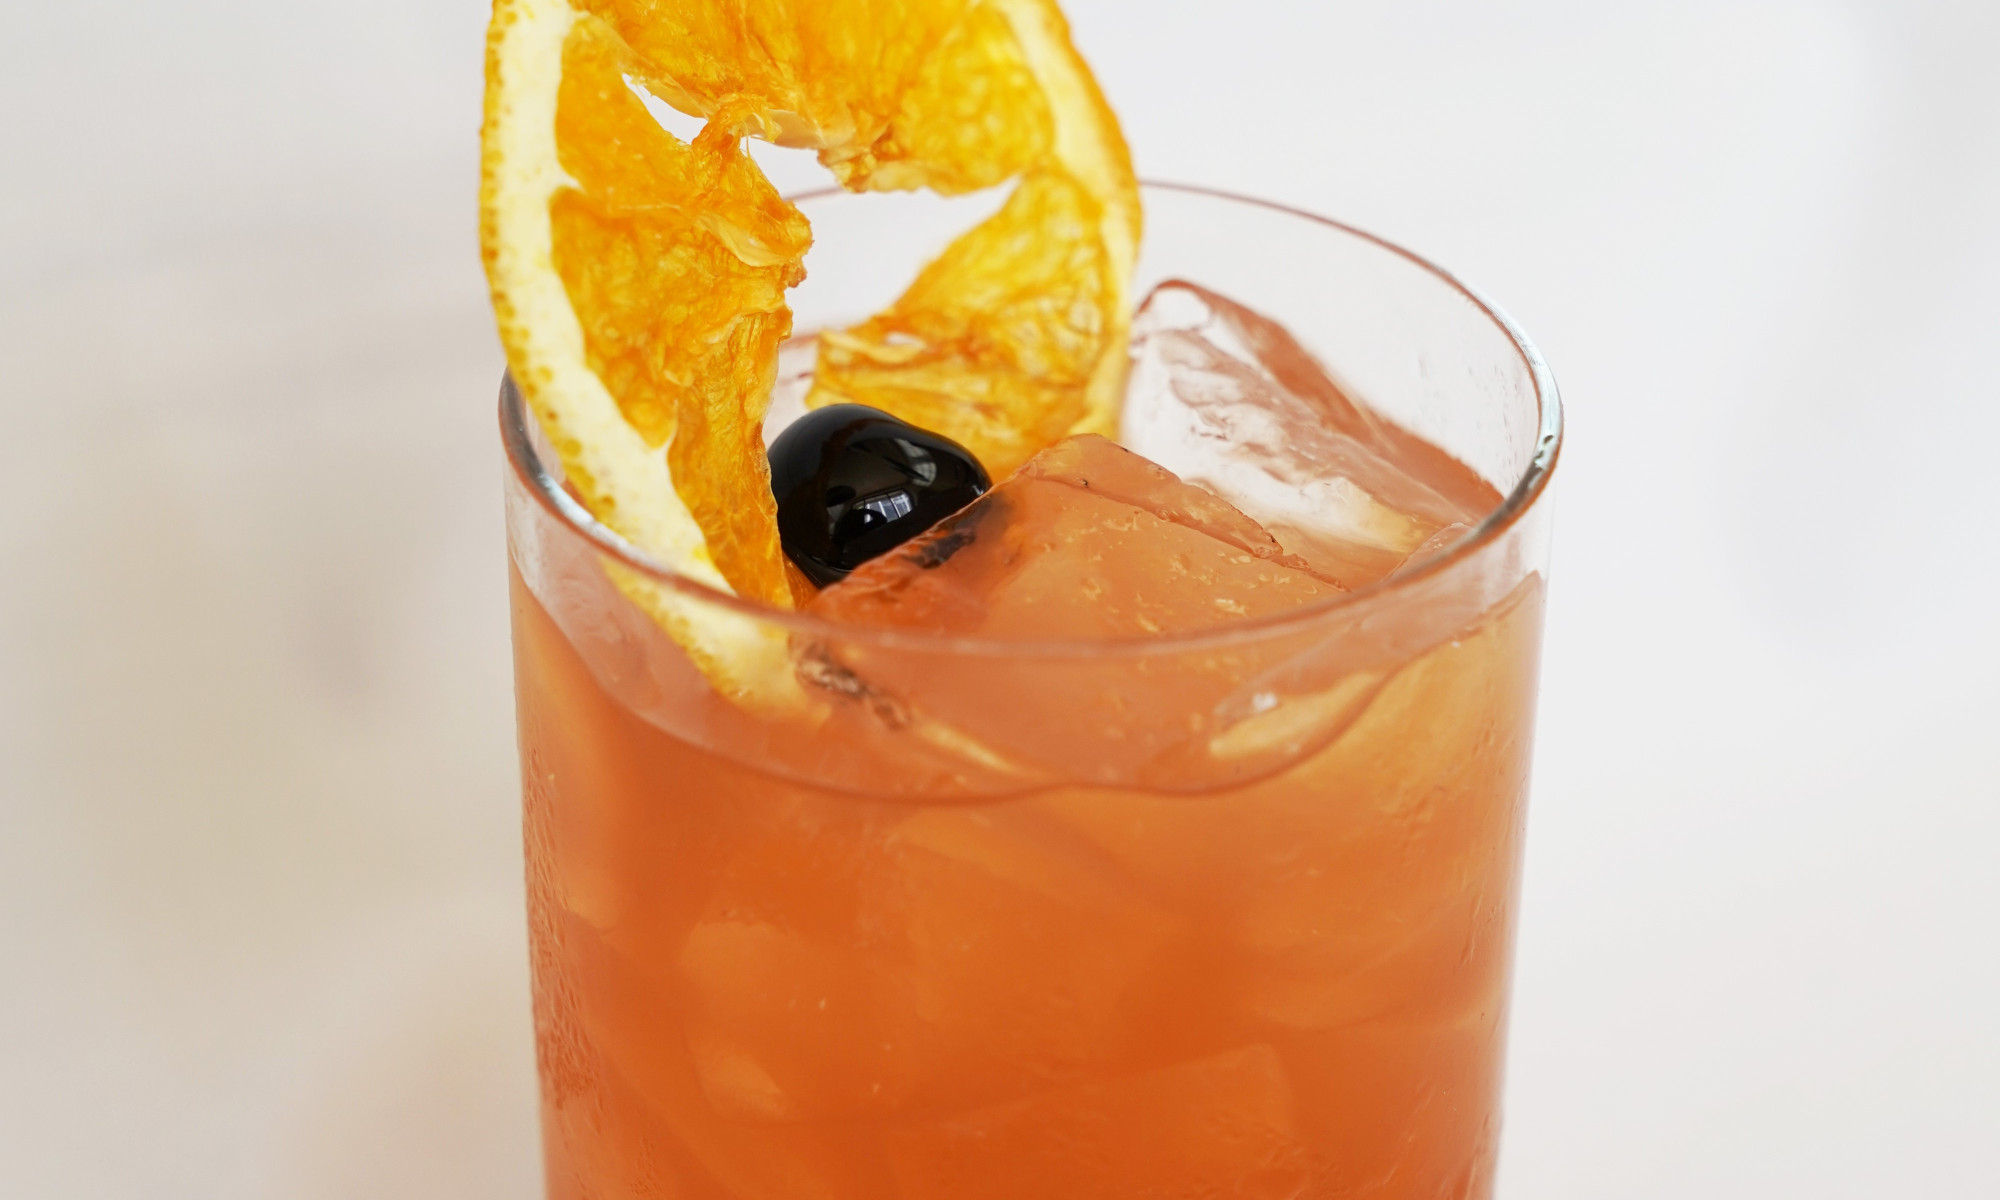 The delicious fall-inspired drink is concocted by blending perfectly aged Bourbon, Luxardo Apricot, fresh lemon juice, Fee Bros Old Fashion bitters and garnished with a dehydrated orange wheel and black cherry.